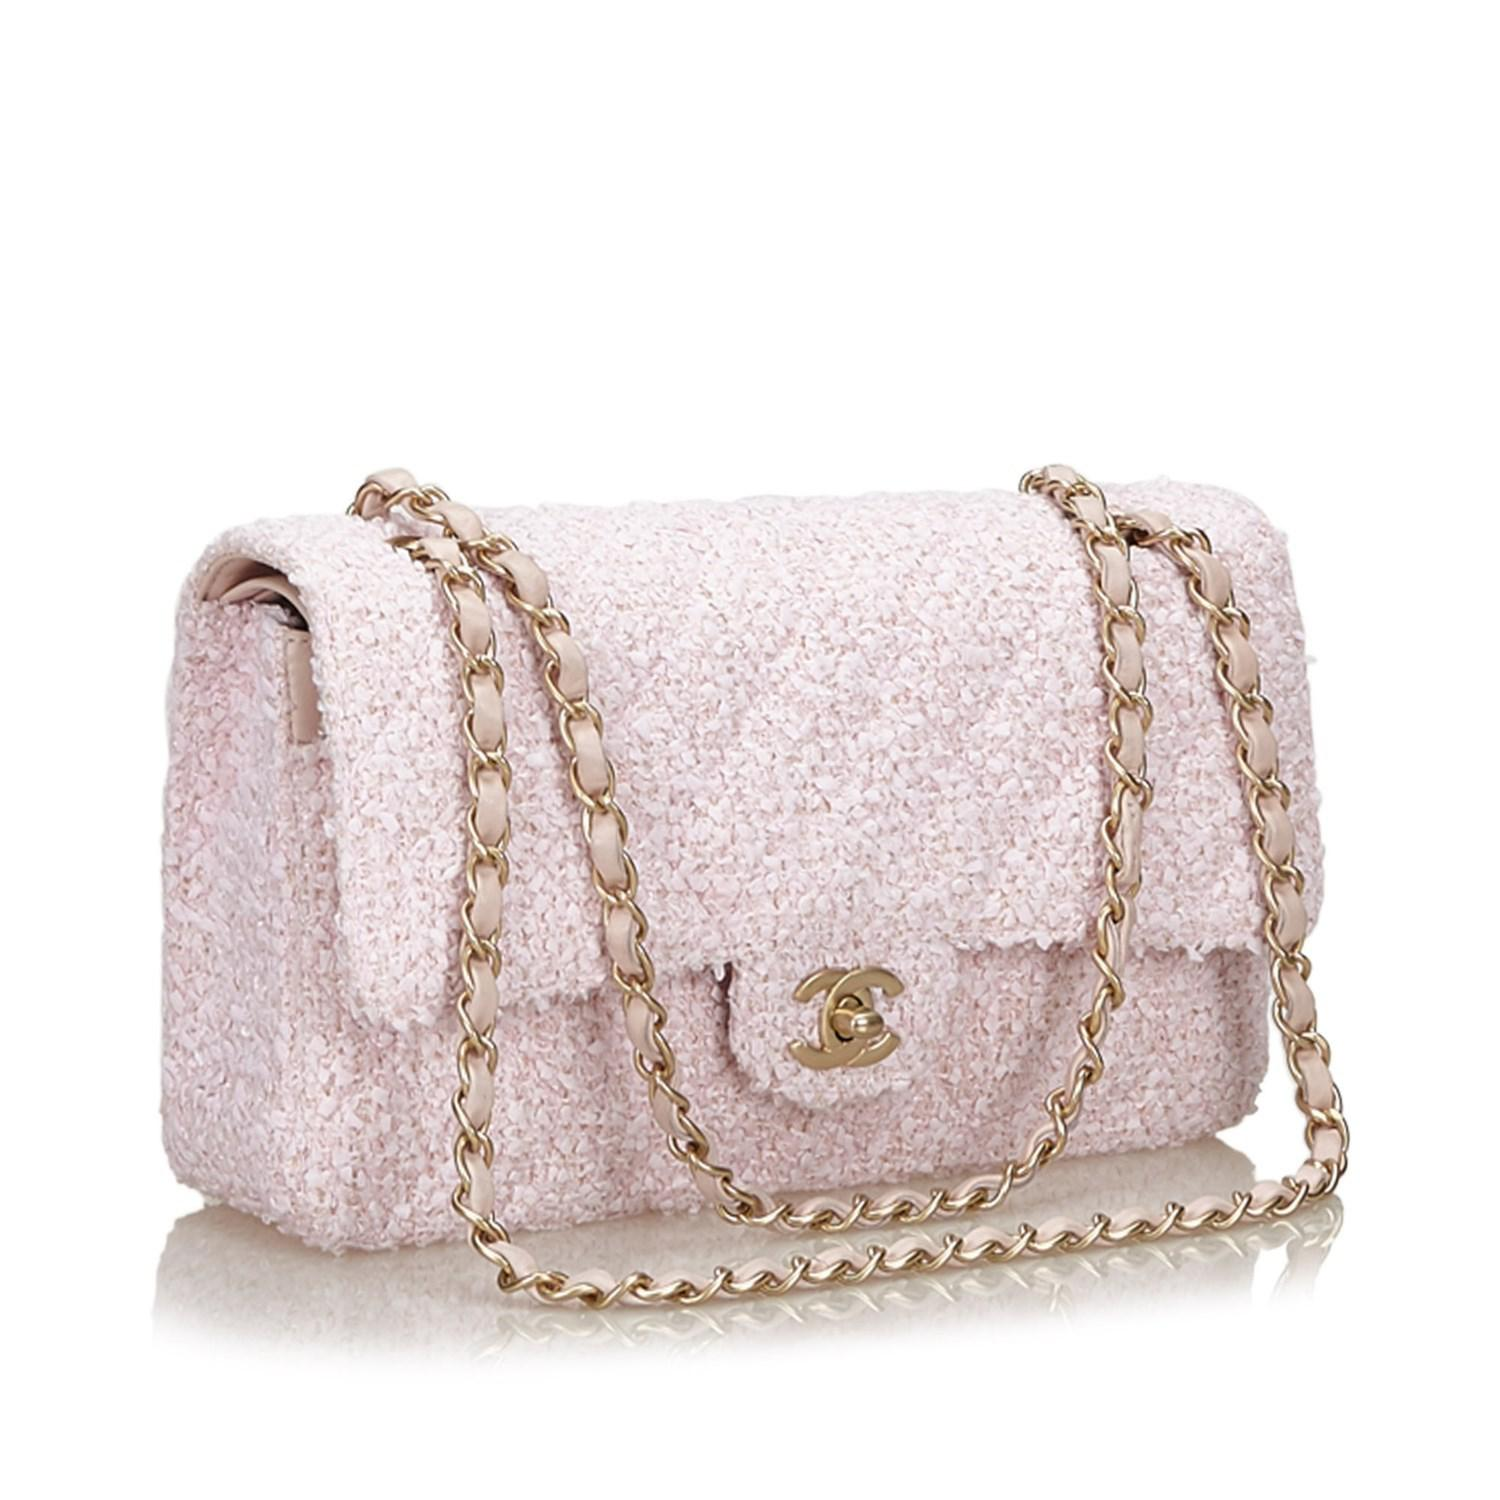 8e3310507210a Lyst - Chanel Small Classic Tweed Double Flap Bag in Pink